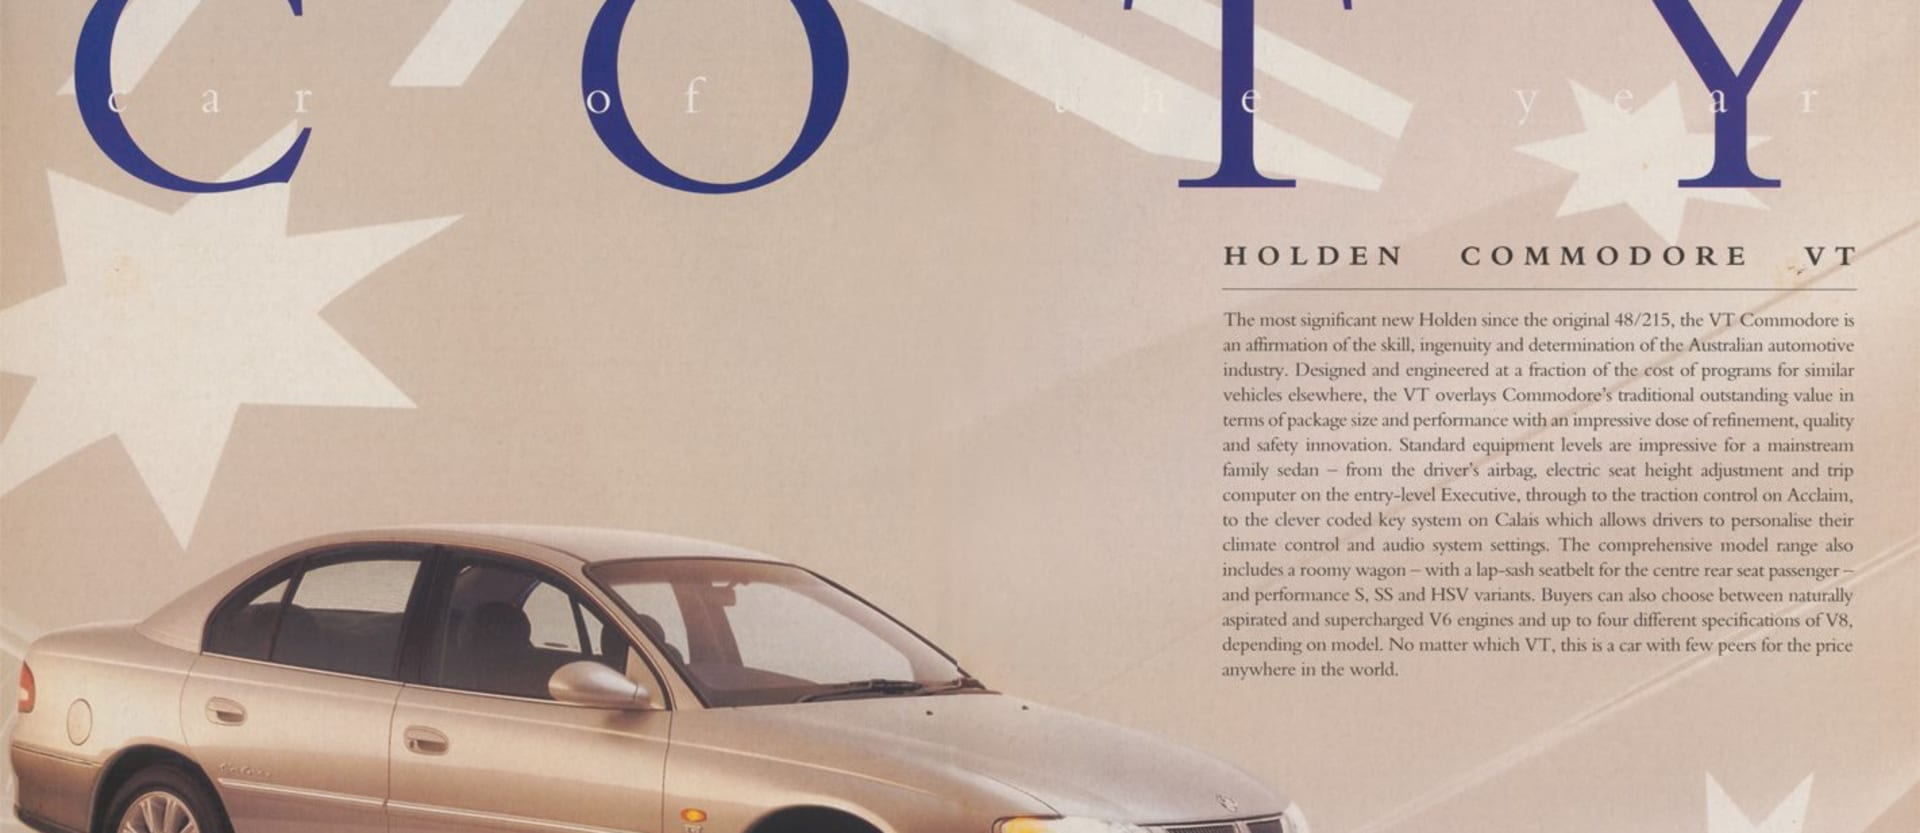 1997 Holden Commodore Car of the Year VT